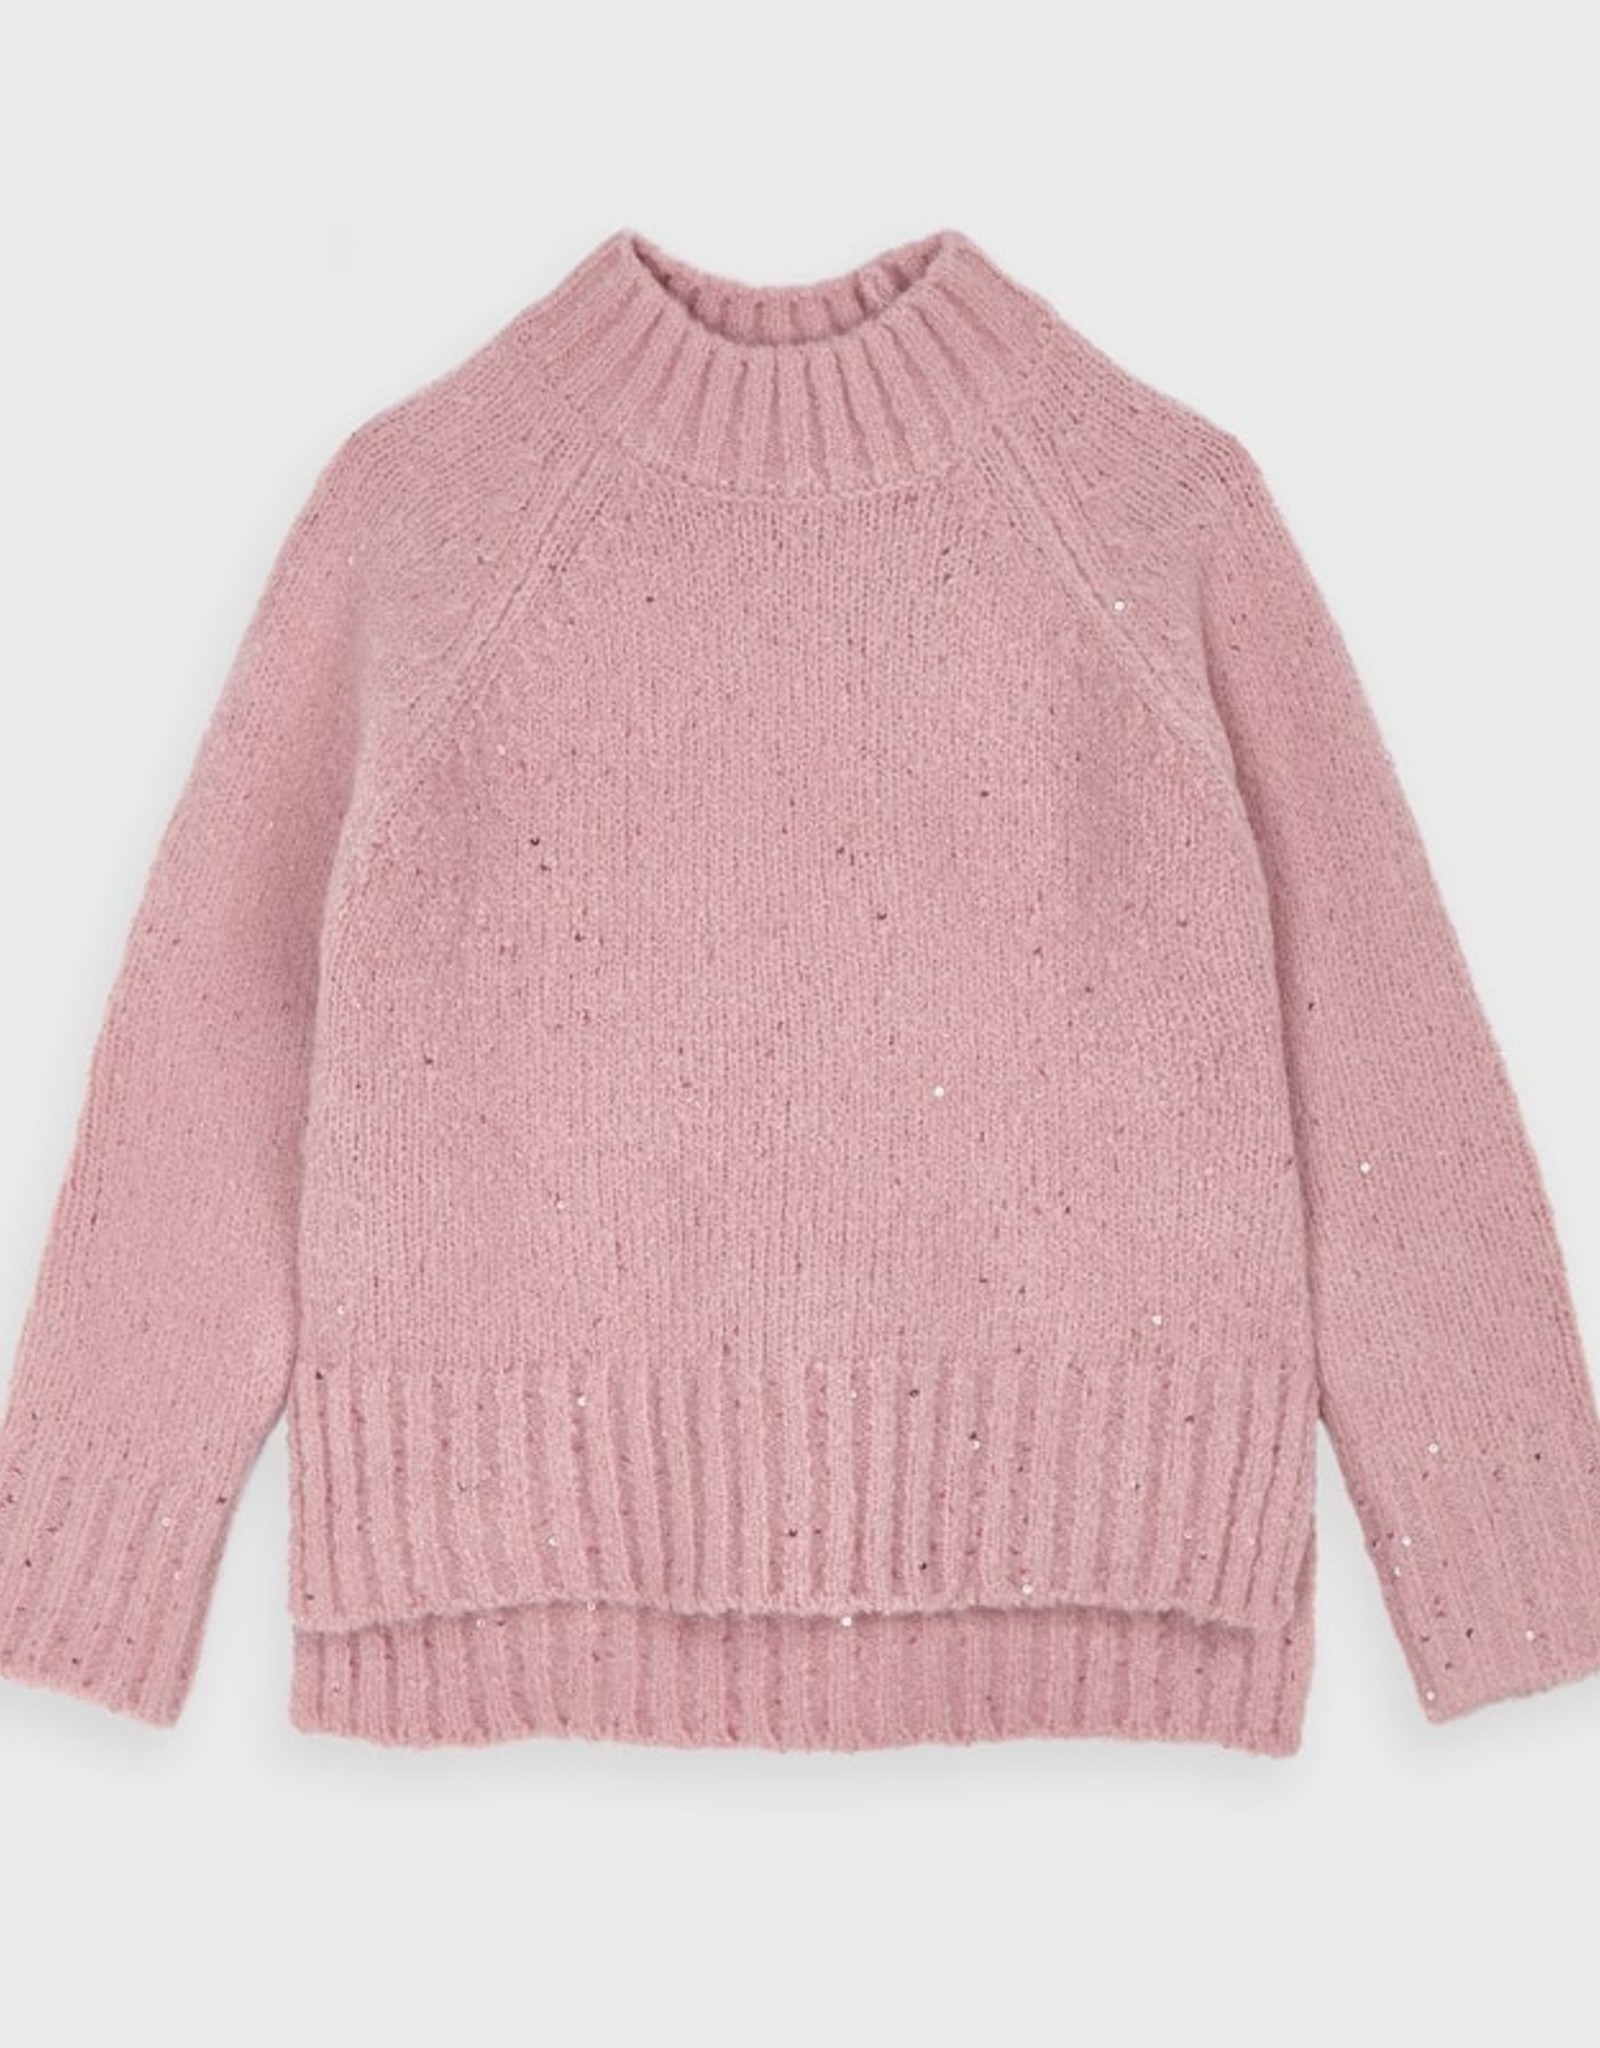 Mayoral FA20 Pink Sequins Sweater